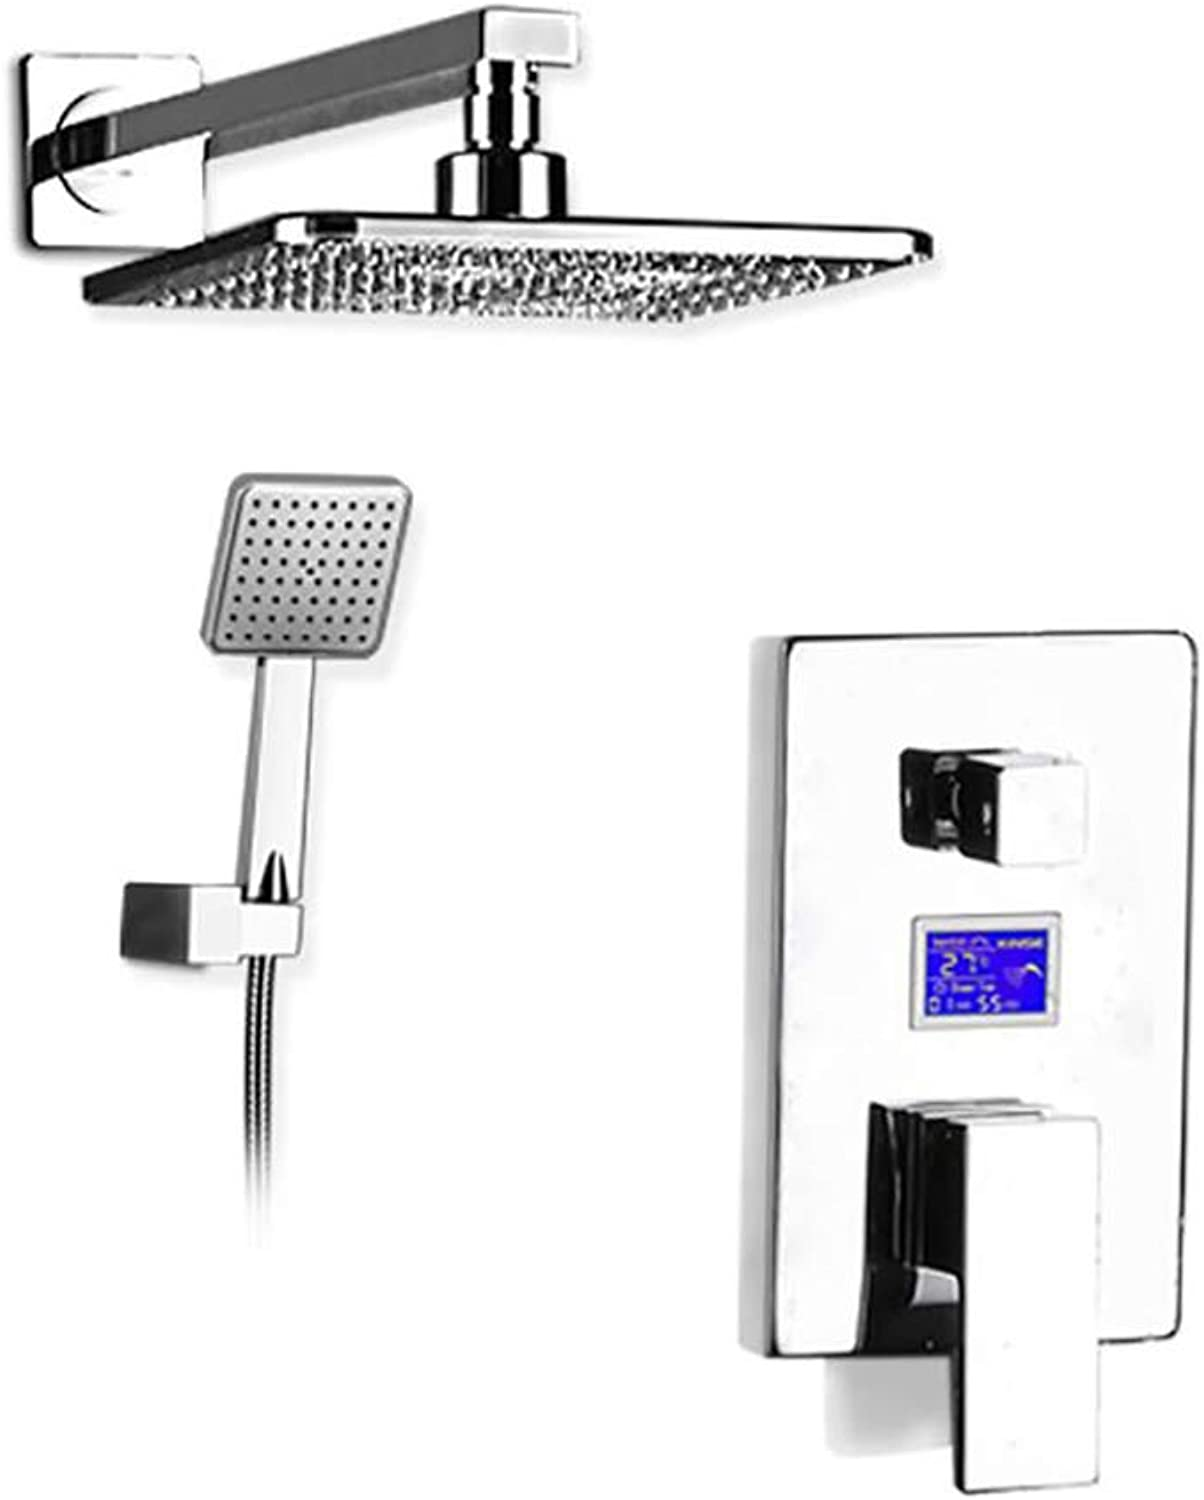 TEHWDE Unterputz Duschsystem mit Duschkopf Kopfbrause Regendusche Adjustable Handbrause Dual Funktionen Dusche Duschset Shower Inkl Kopfbrause Handbrause